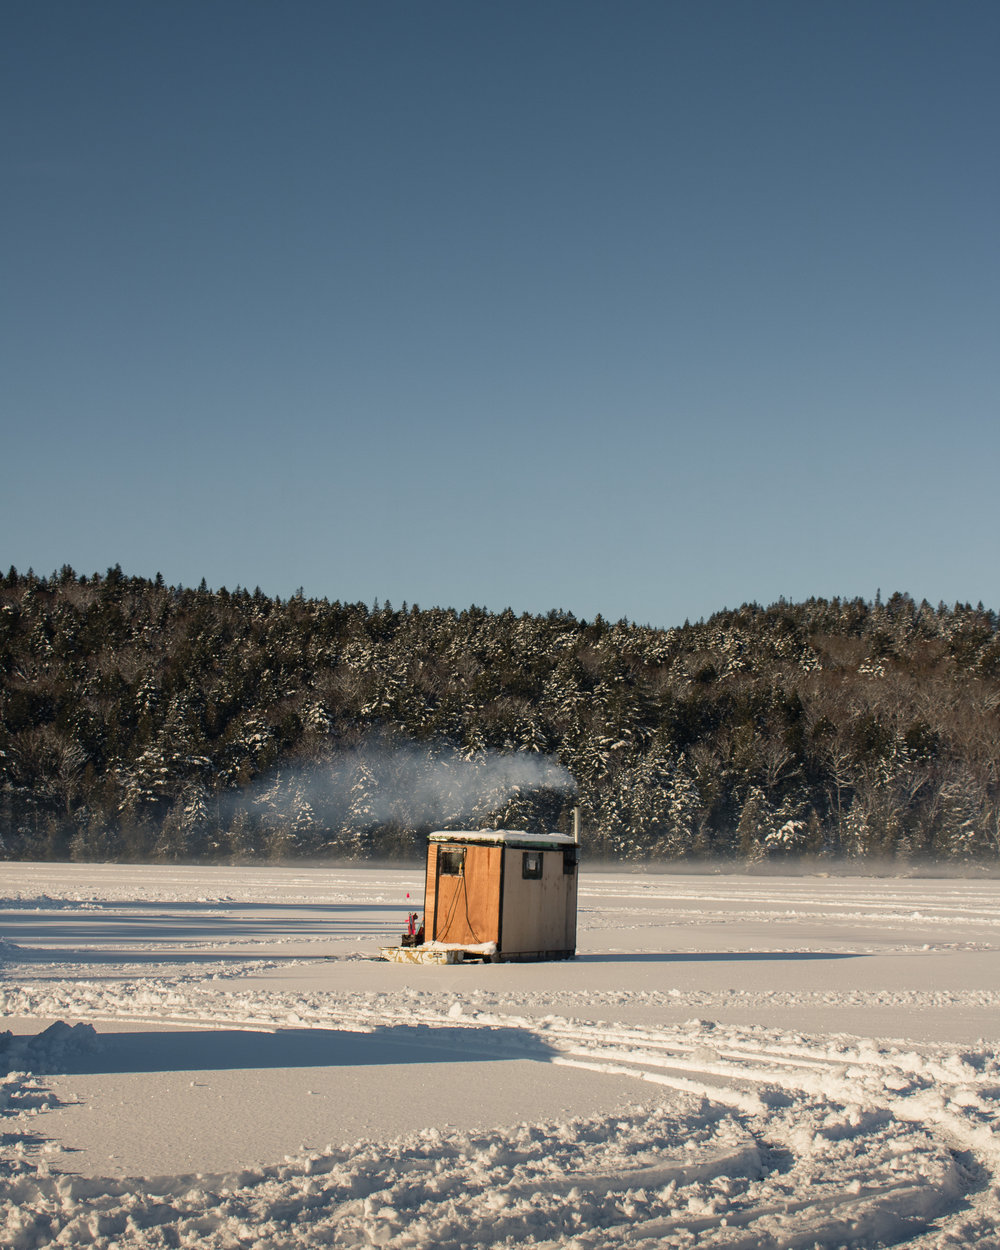 ice fishing hut on frozen lake